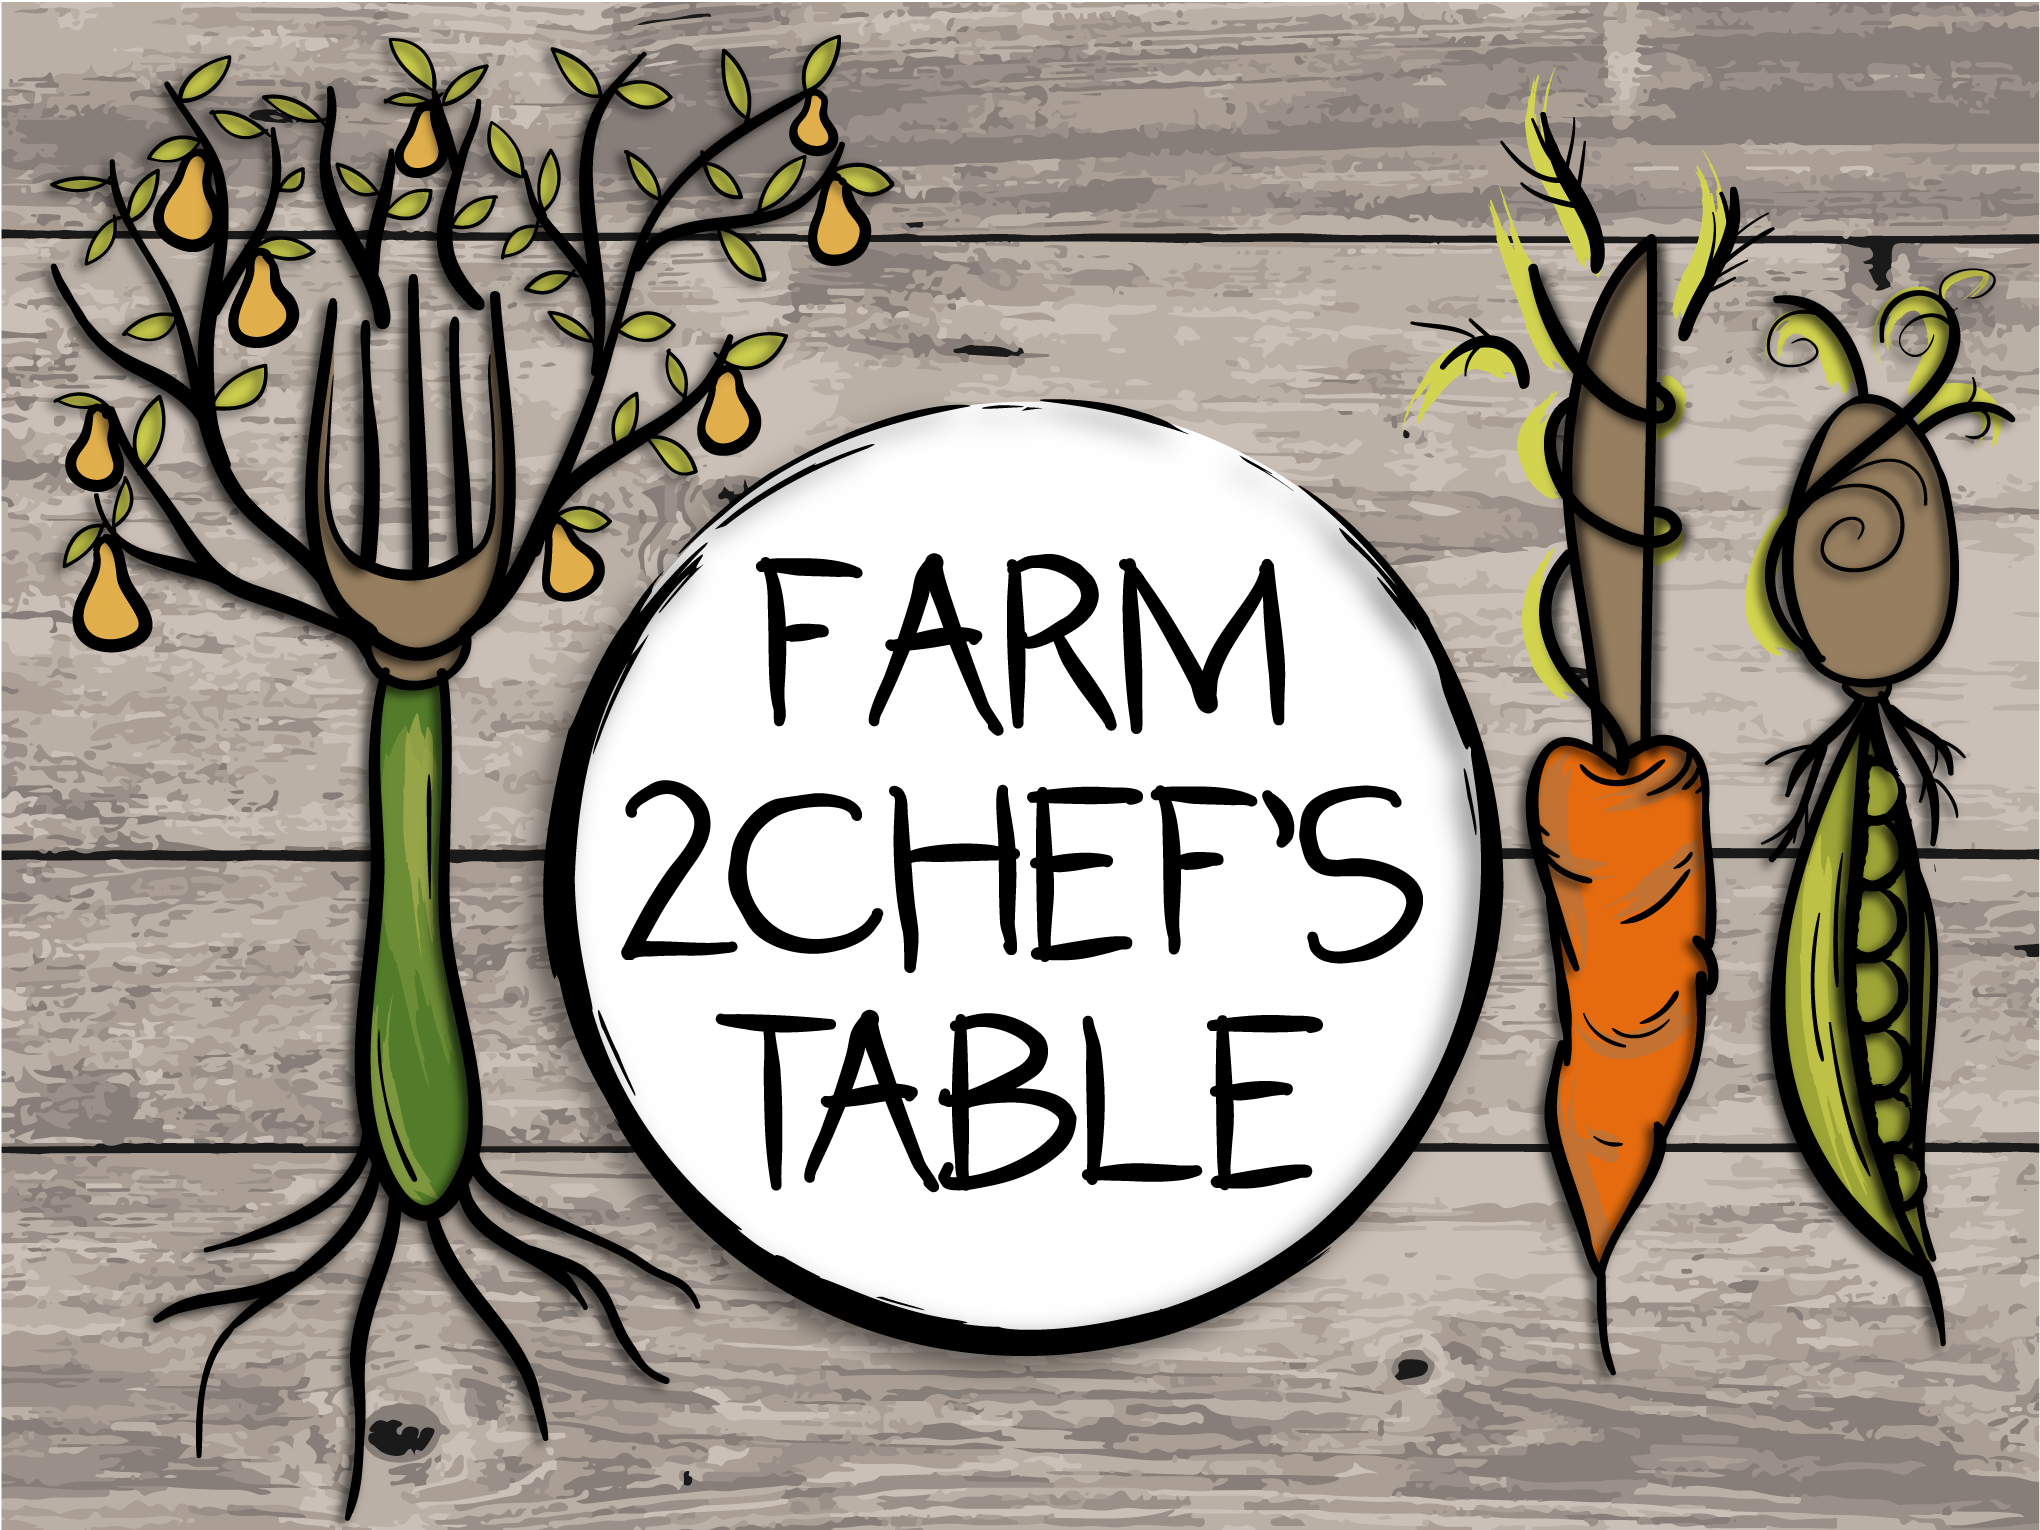 Farm2Chef'sTable